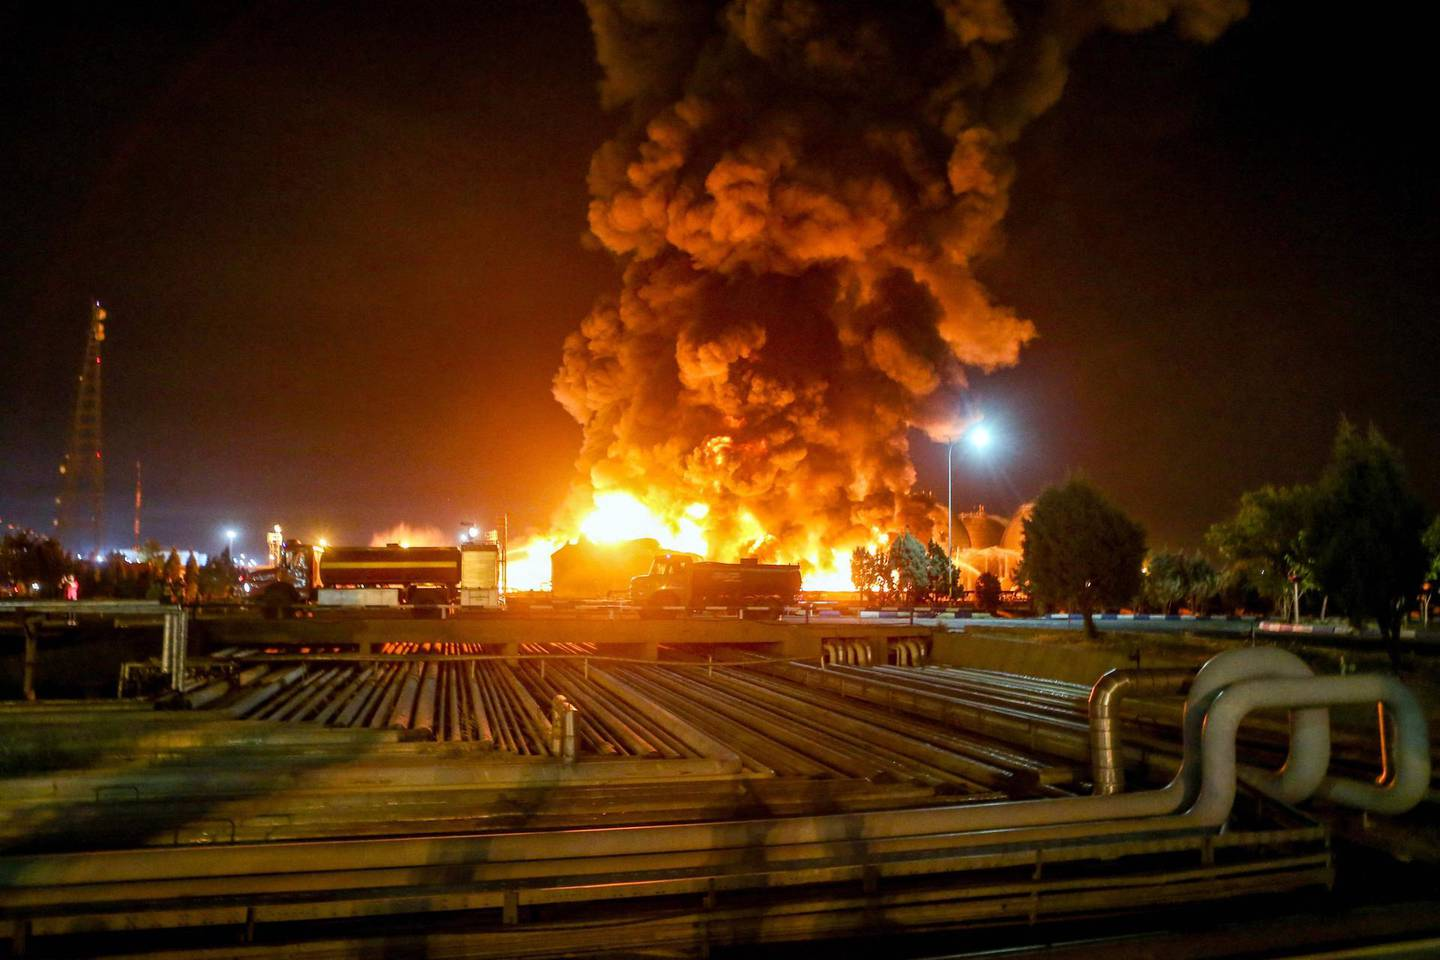 A picture taken late on June 2, 2021, shows fire raging at an oil refinery in the Iranian capital Tehran. A fierce blaze broke out at the refinery in southern Tehran after a liquefied gas line leaked and exploded, the head of the capital's crisis team said on state television. / AFP / TASNIM NEWS / Vahid AHMADI